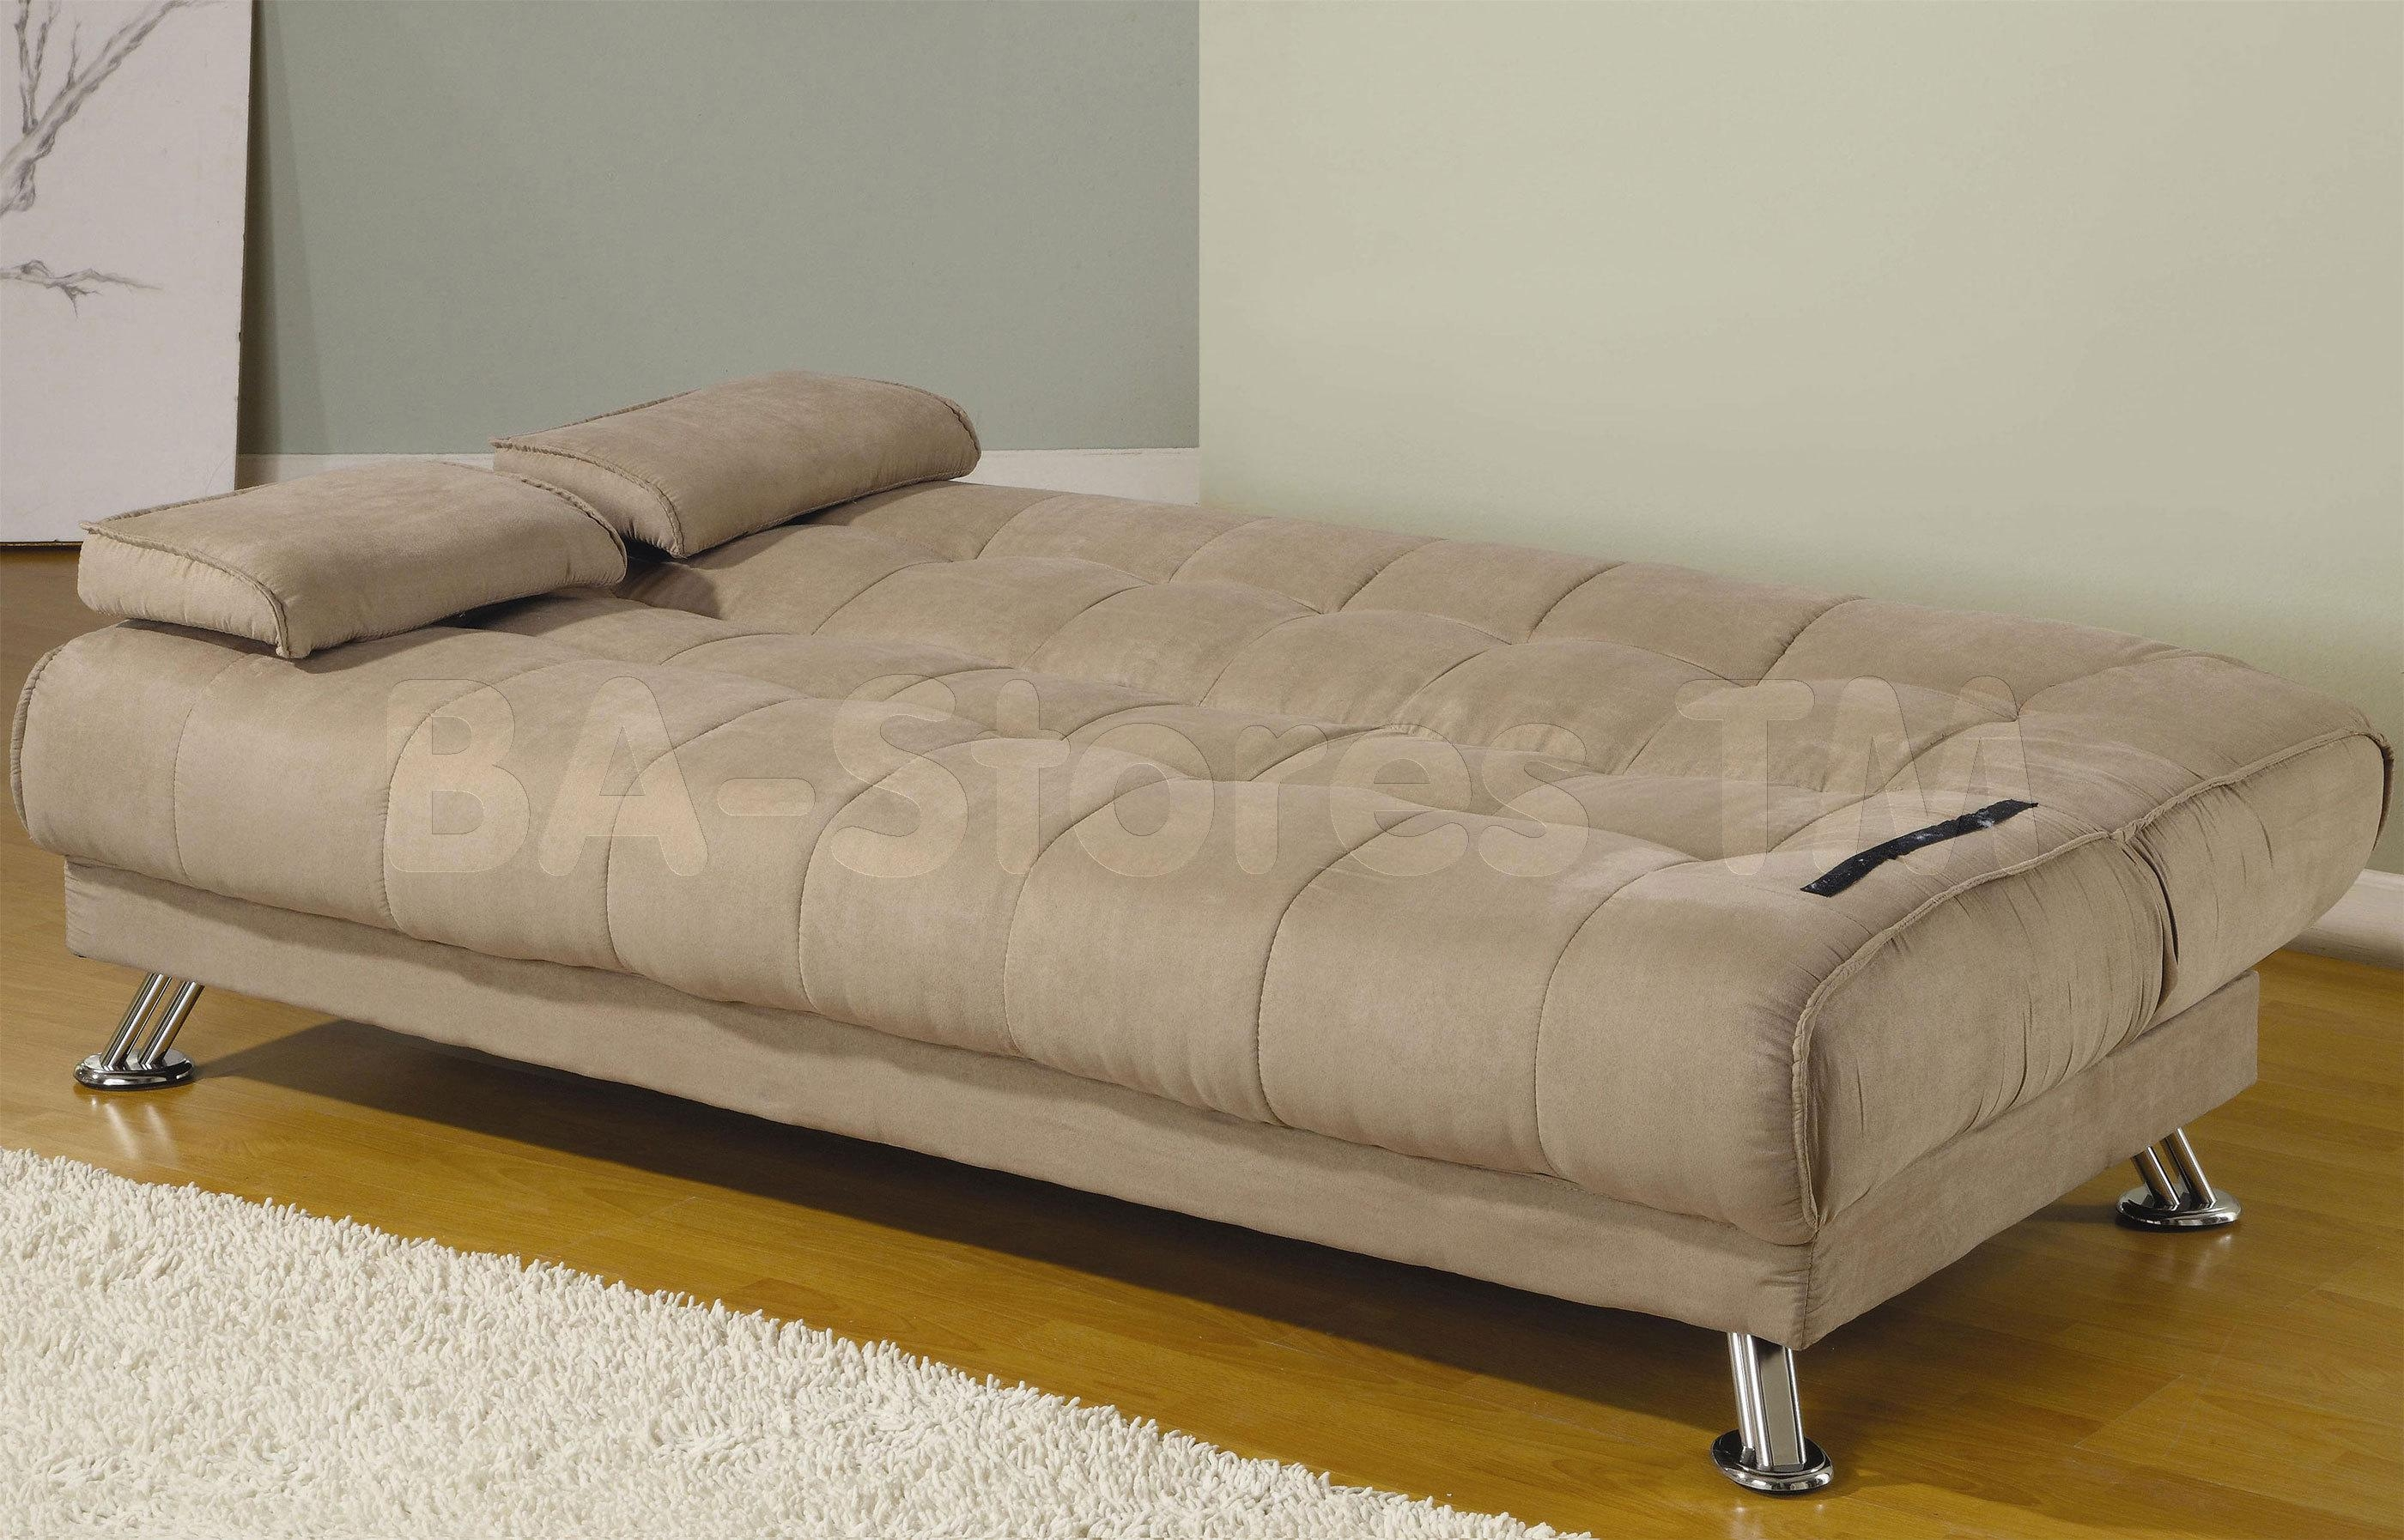 Full Size Sofa Bed Sheets | Tehranmix Decoration In Sofa Beds Sheets (Image 1 of 20)